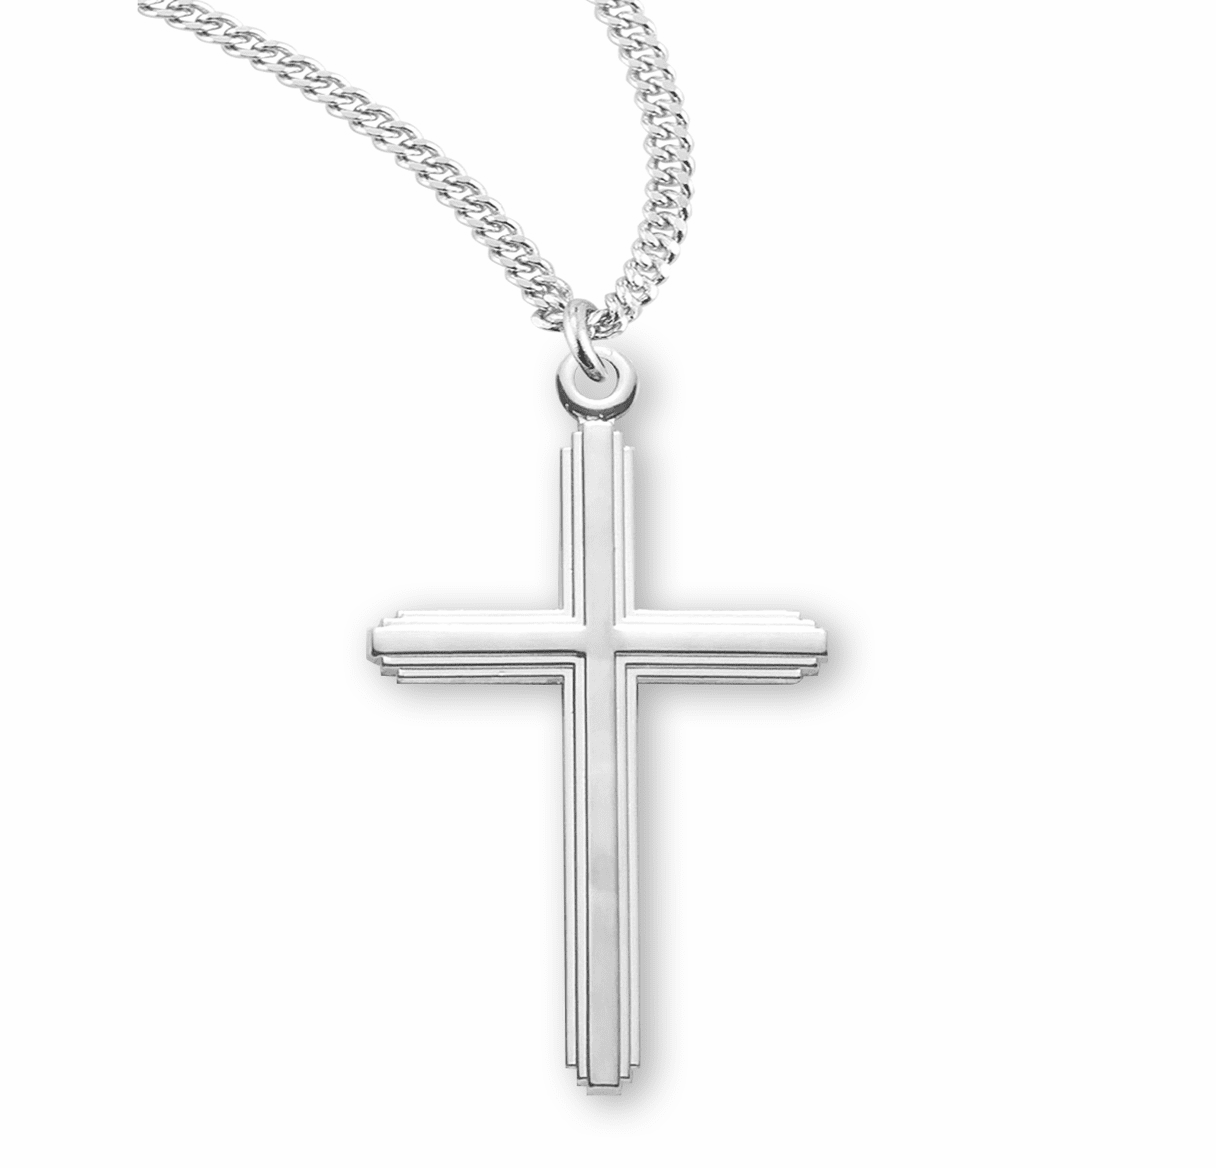 HMH Religious Sterling Silver Inlayed Double Cross Necklace